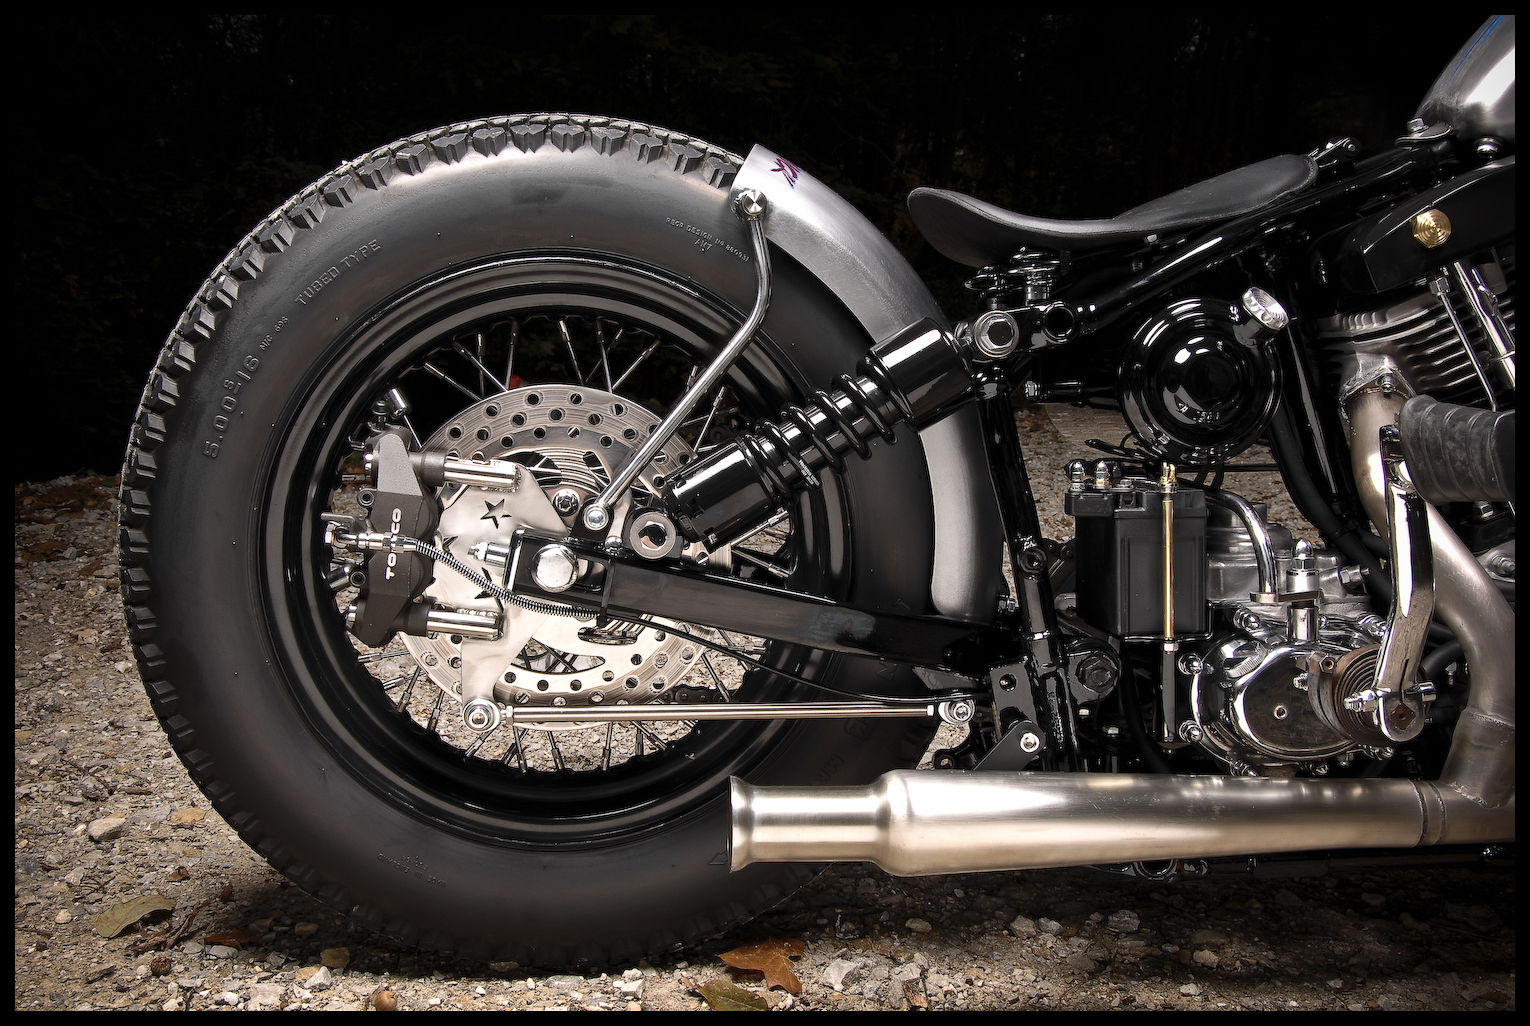 Shovelhead Tach Wiring Trusted Diagrams Infernal Combustion Root Beer Chopper Harley Panhead Diagram Carburetor Headlight